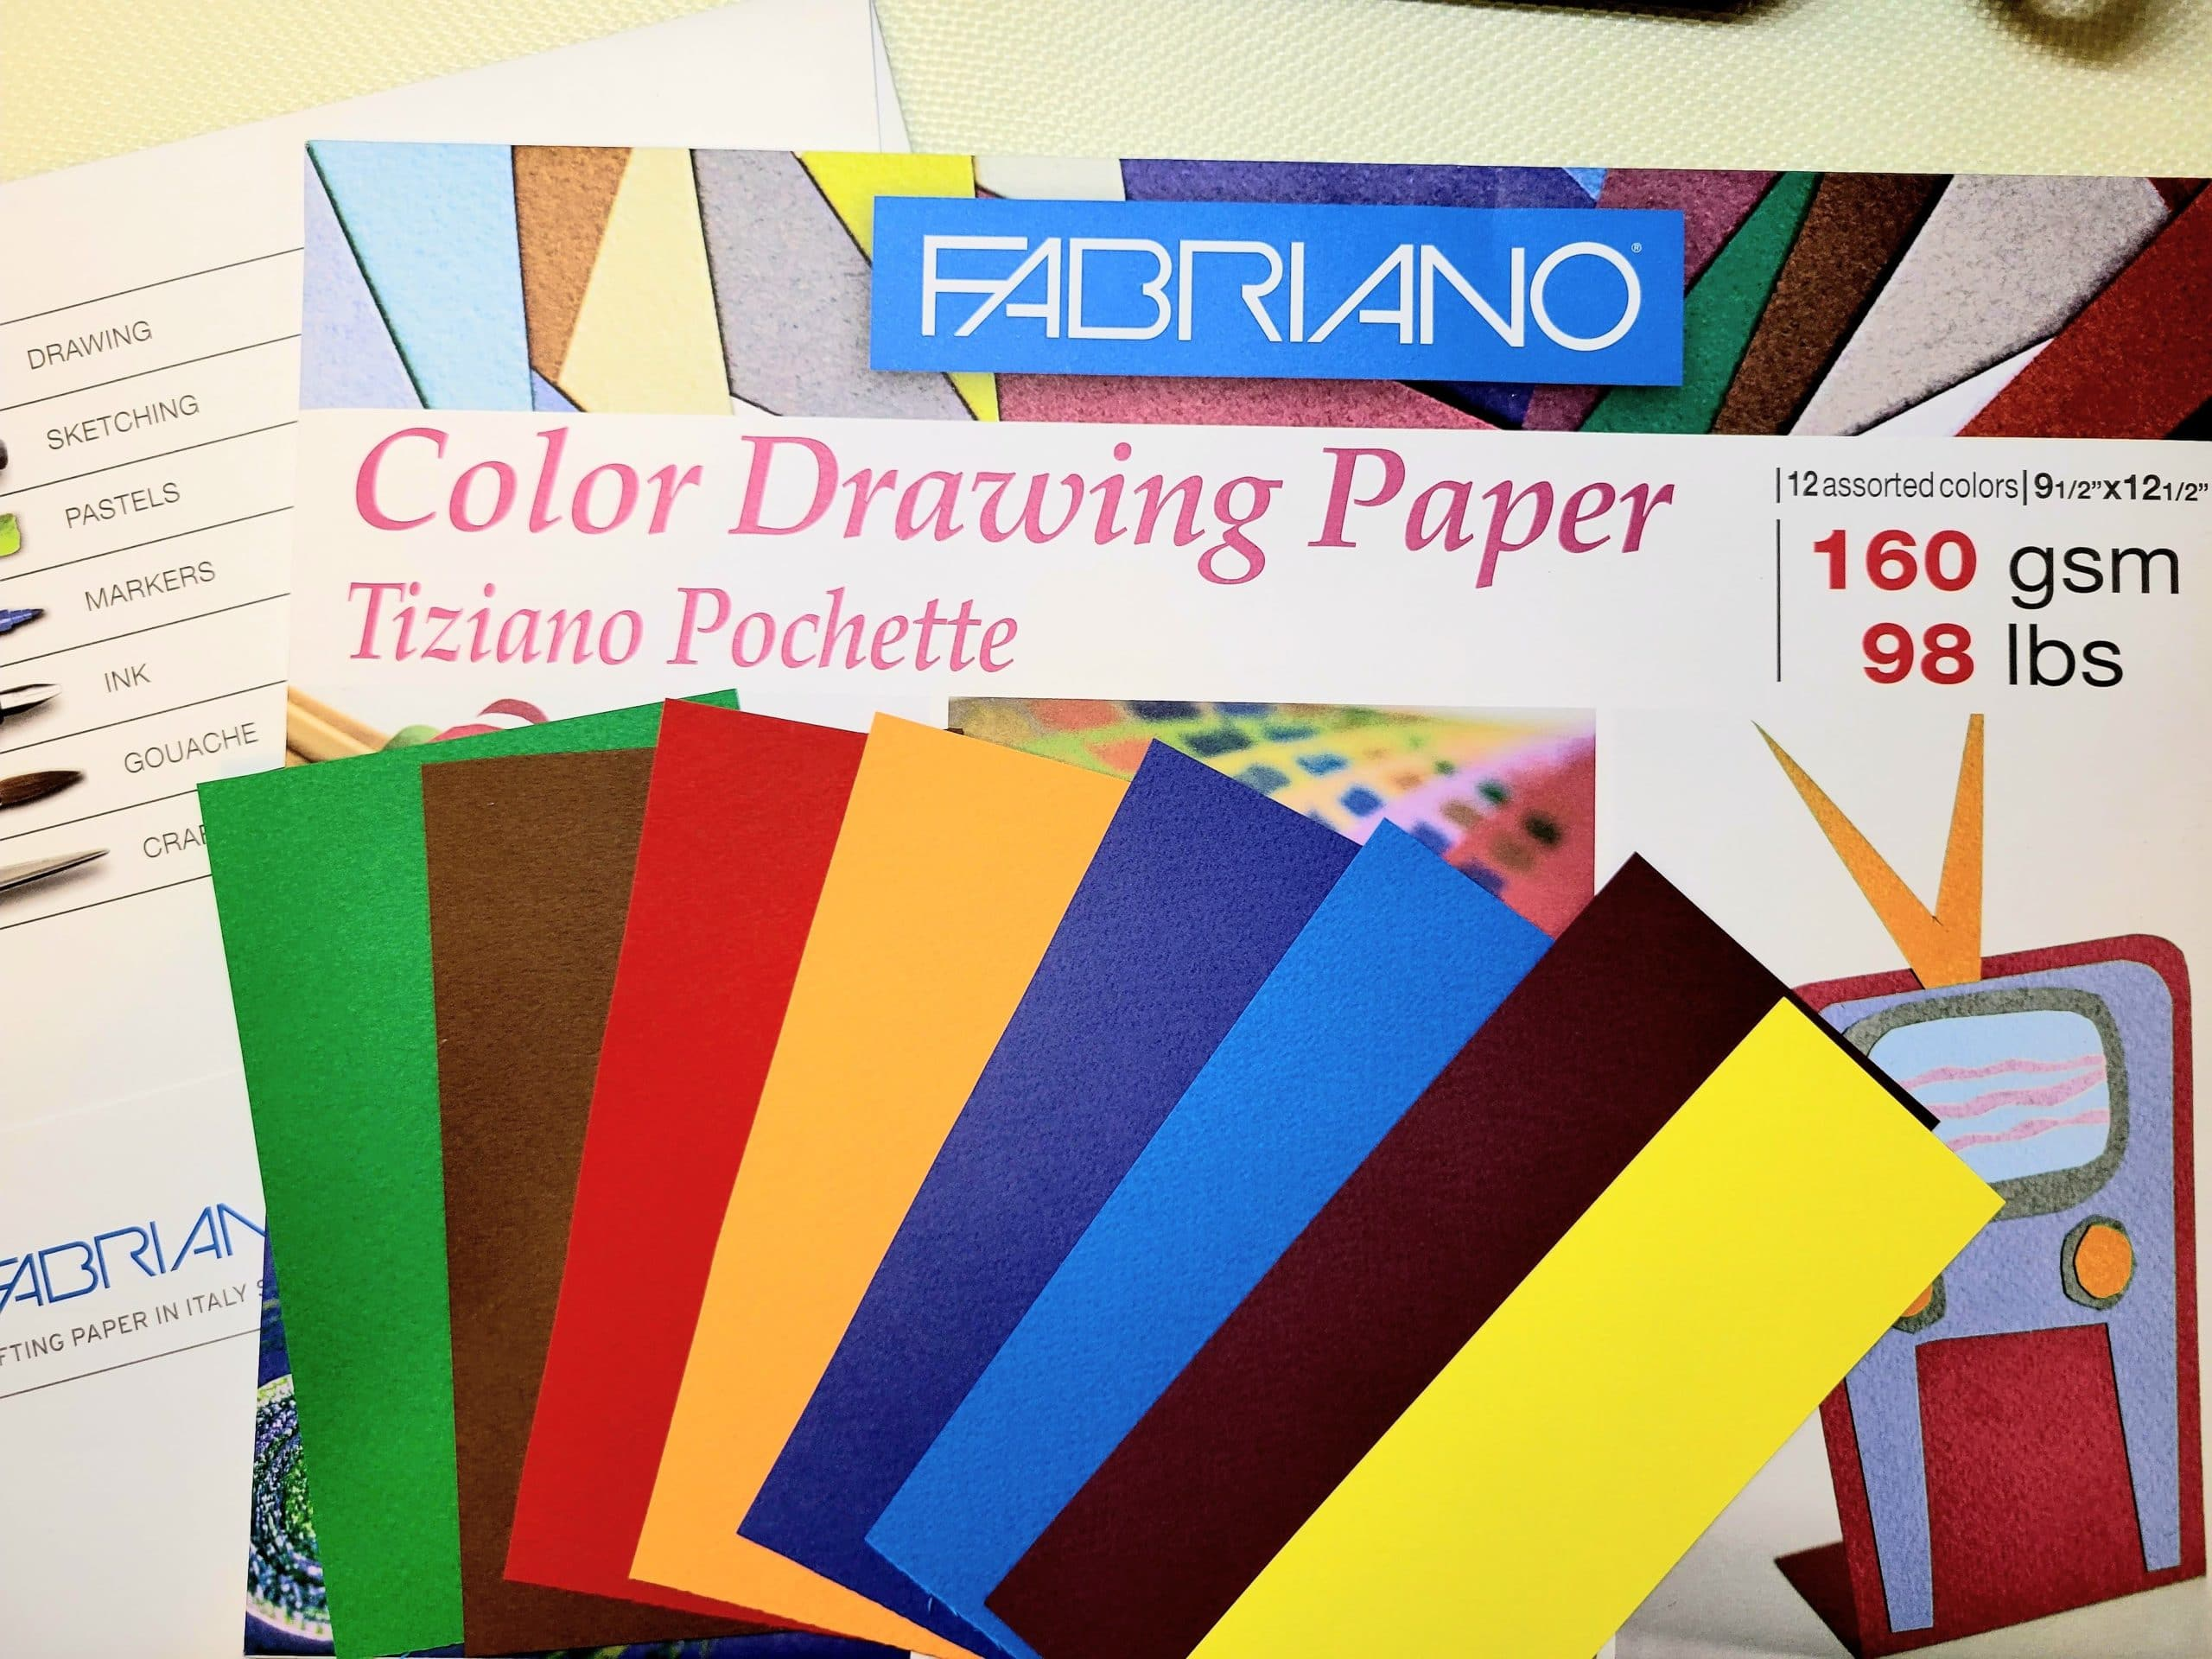 Image showing Fabriano Color Drawing Paper 160 gsm, 98 lbs